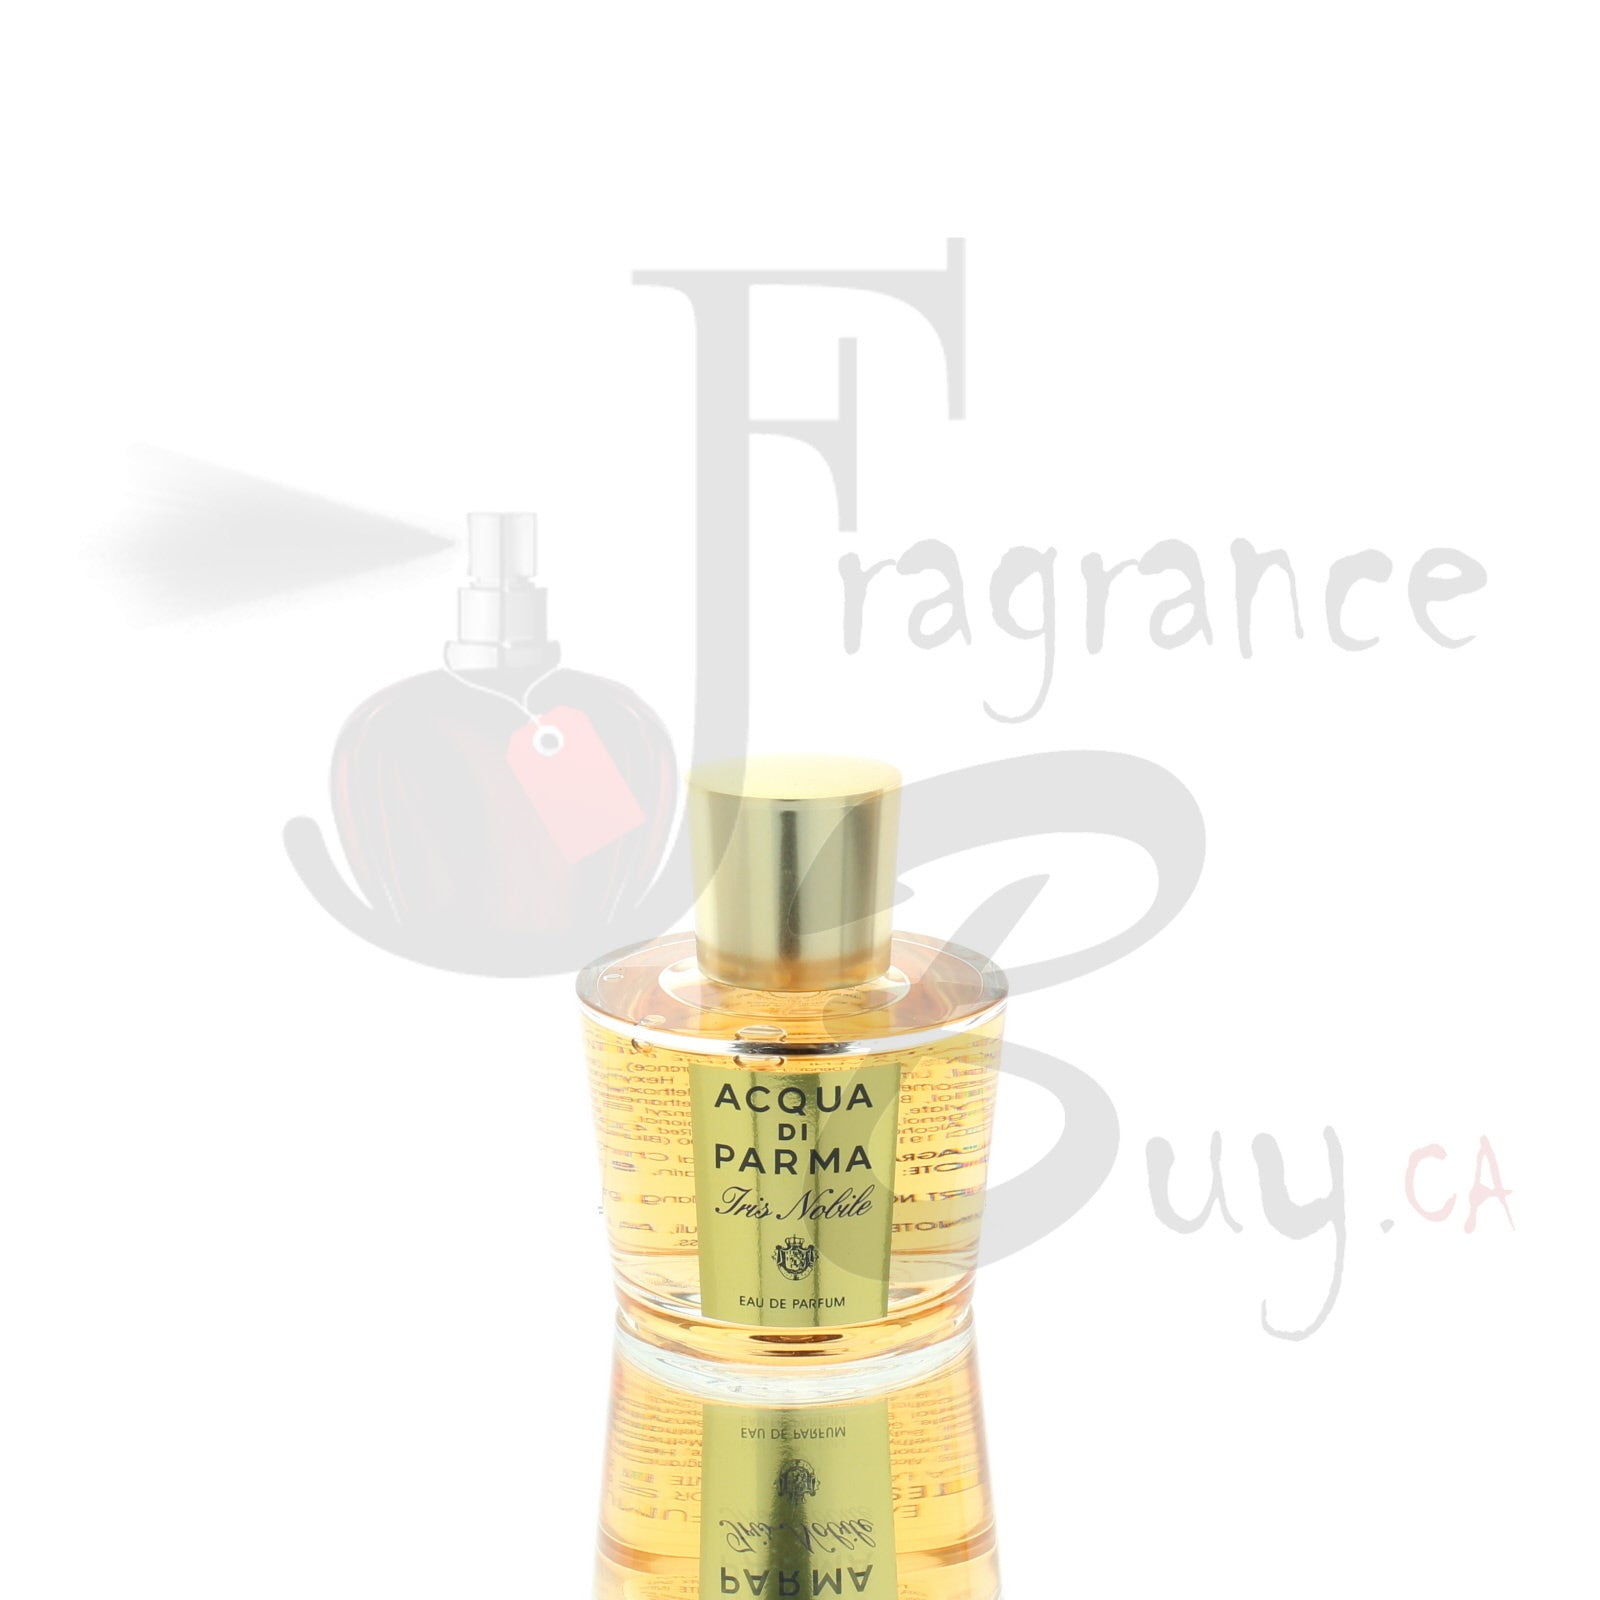 Acqua di Parma Iris Nobile for Woman